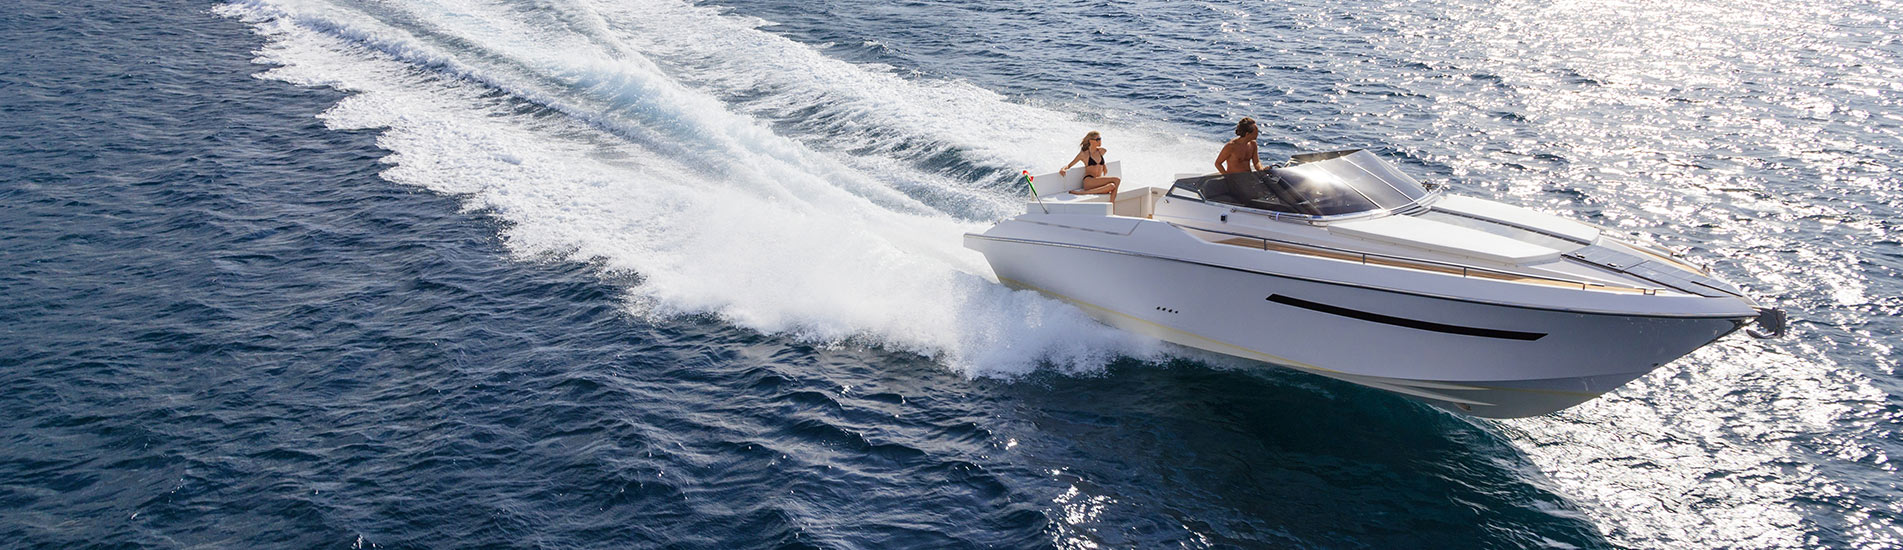 New Boats for Sale in Pompano Beach | Used Boats for Sale